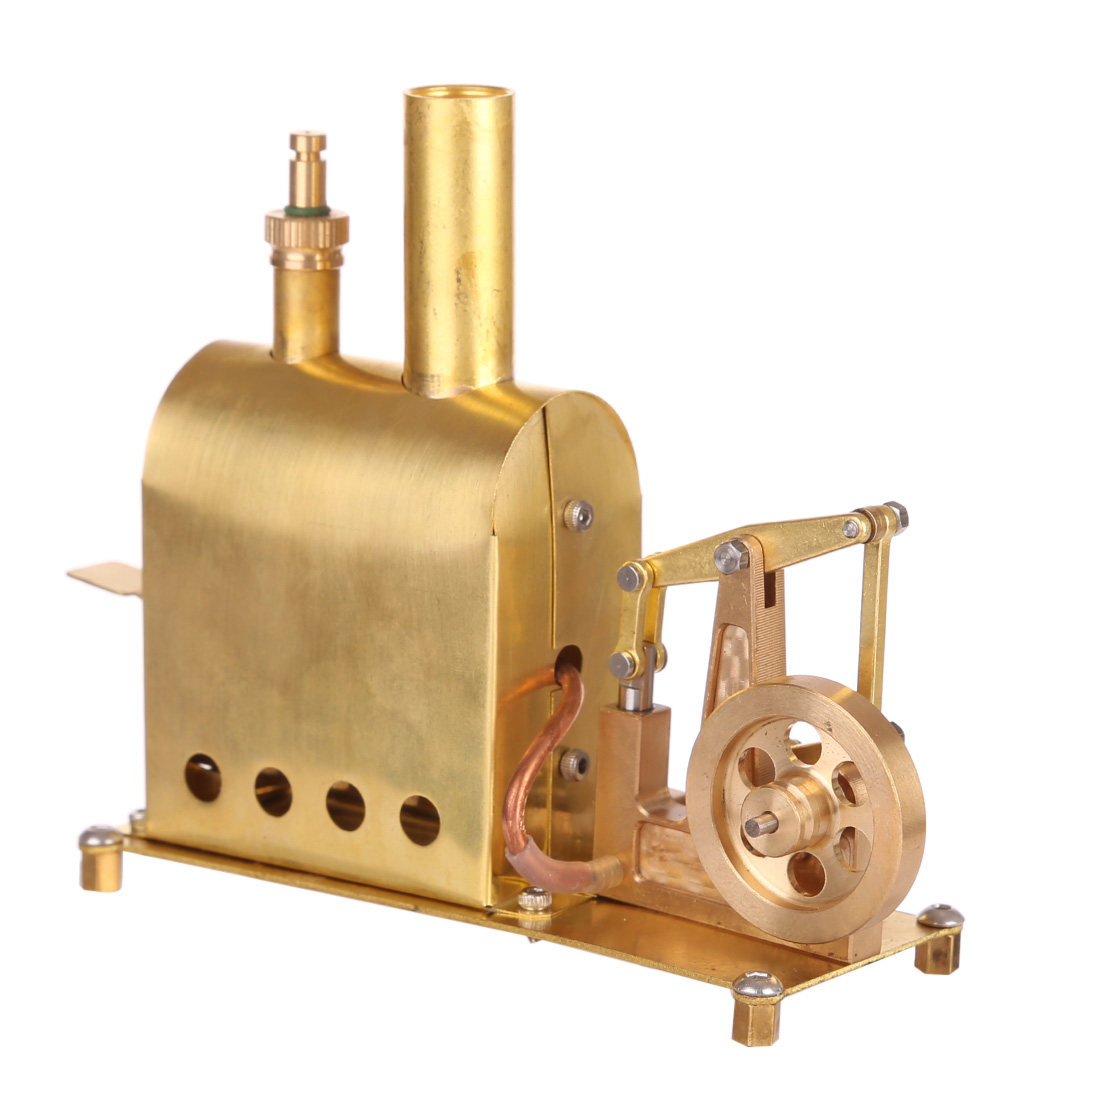 11.3 X 4.5 X 10CM Mini Pure Copper Steam Engine Model With Boiler Creative Gift Set